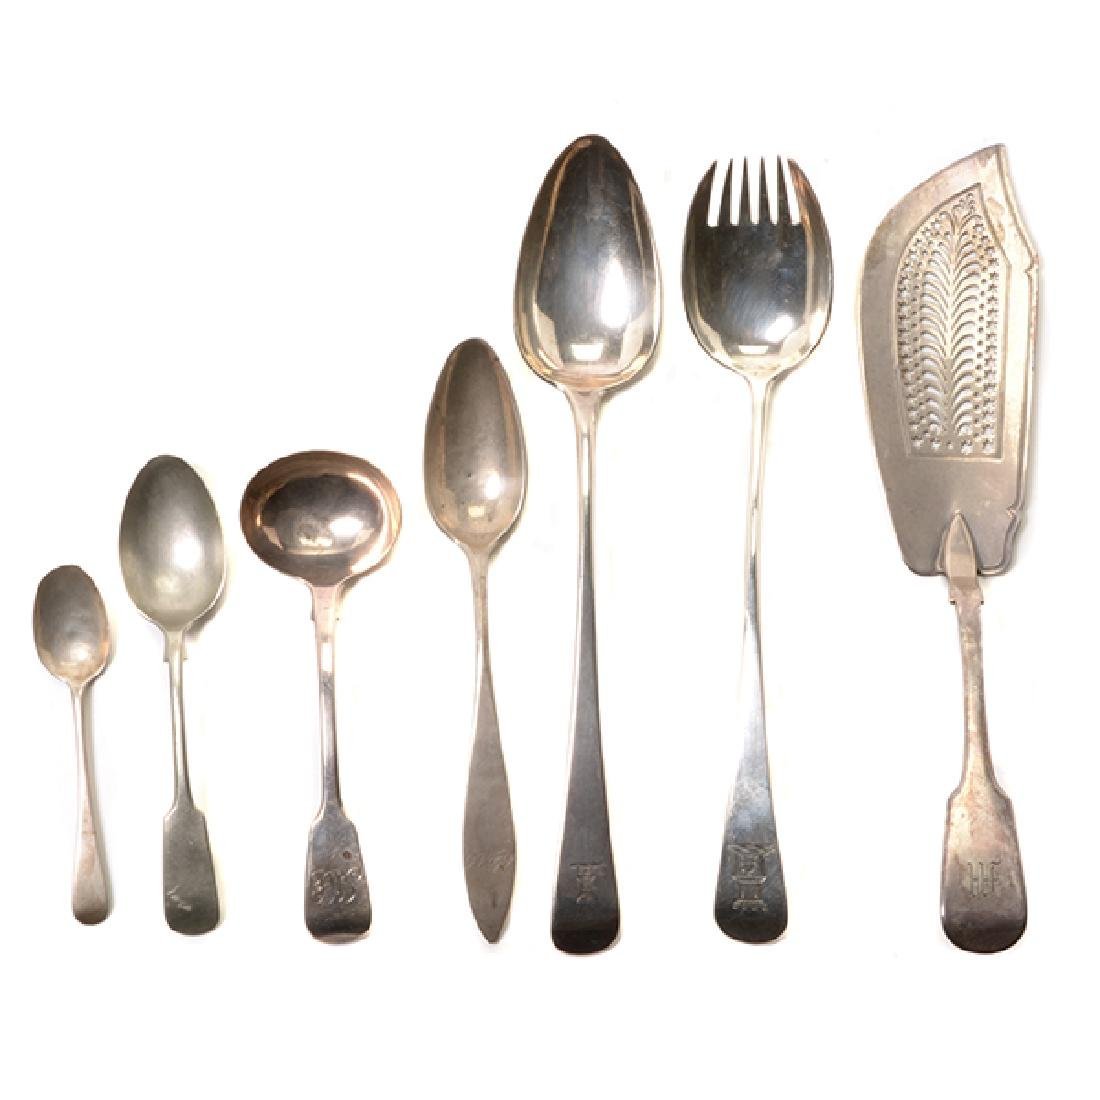 Collection of English Sterling Silver Flatware